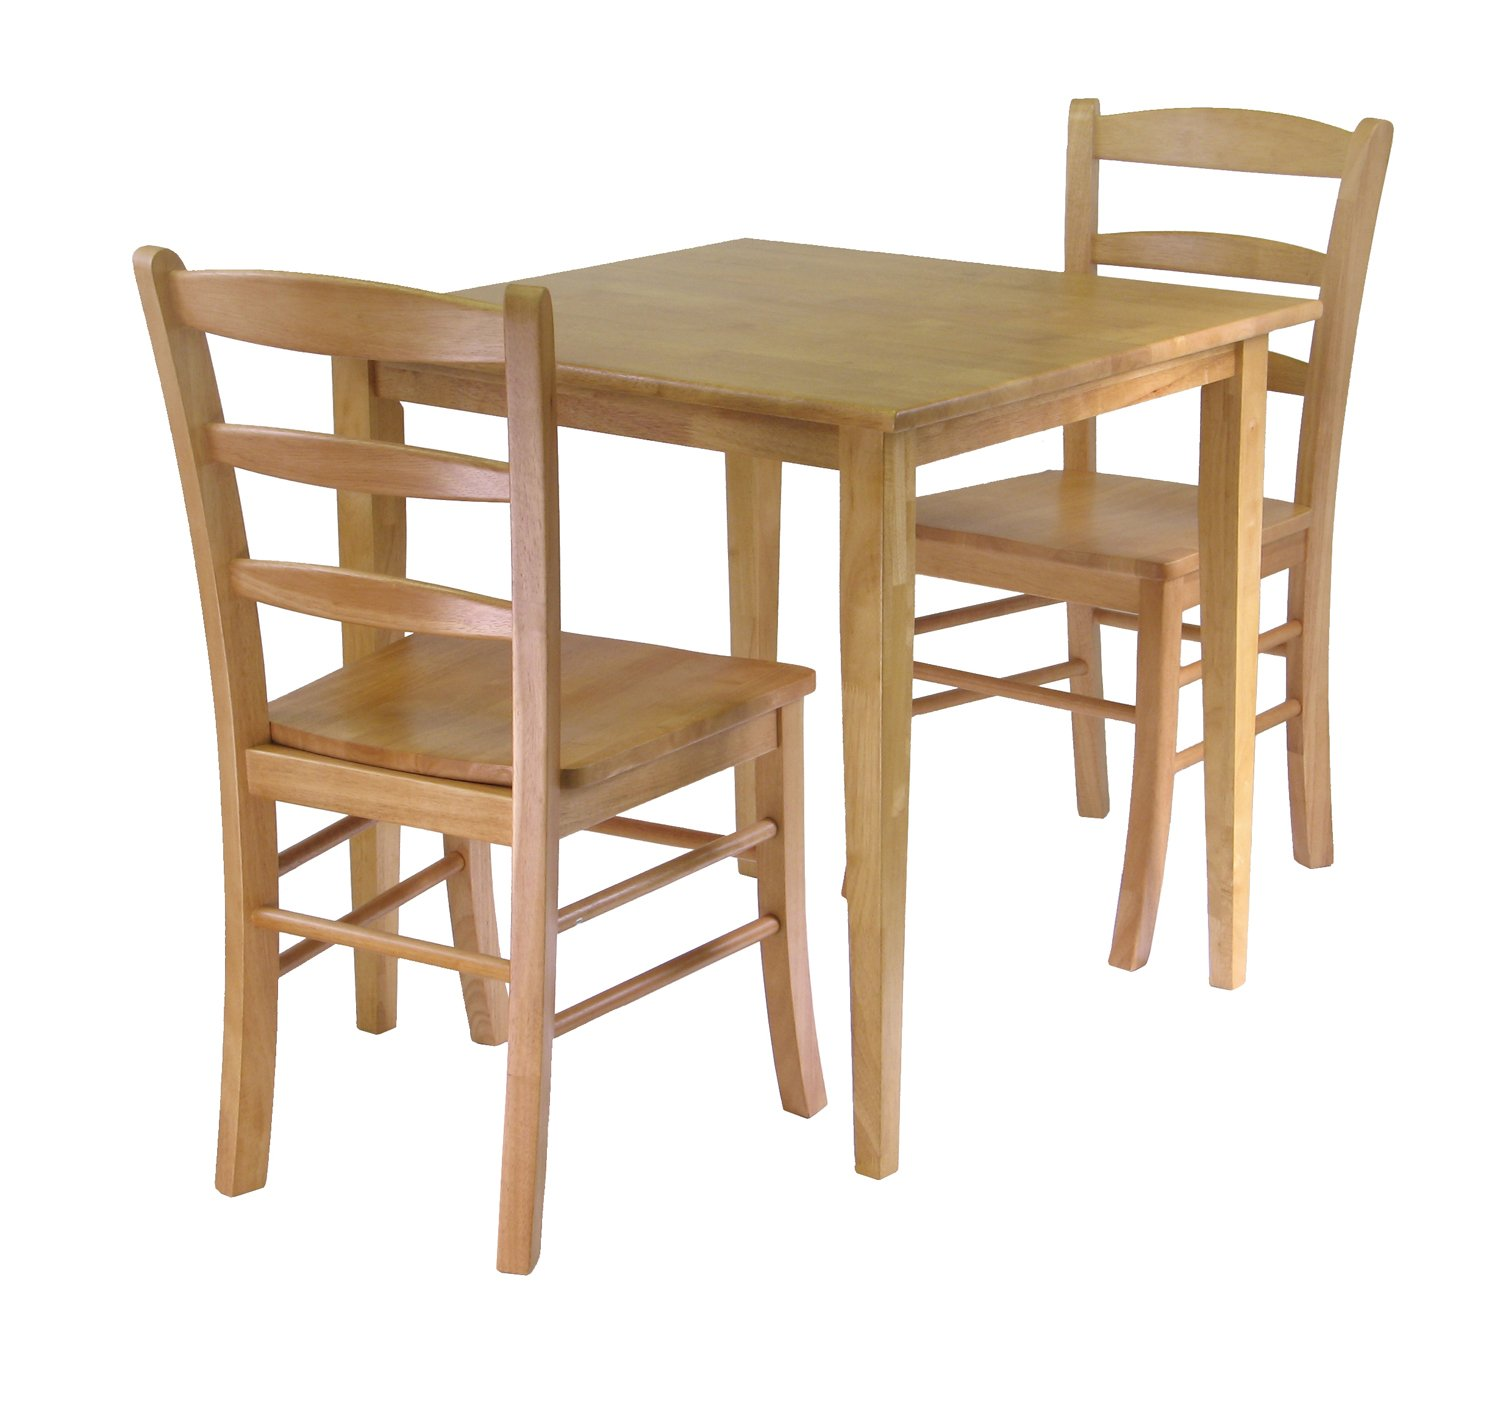 small kitchen table sets small square kitchen table 3 Piece Wood Dining Set